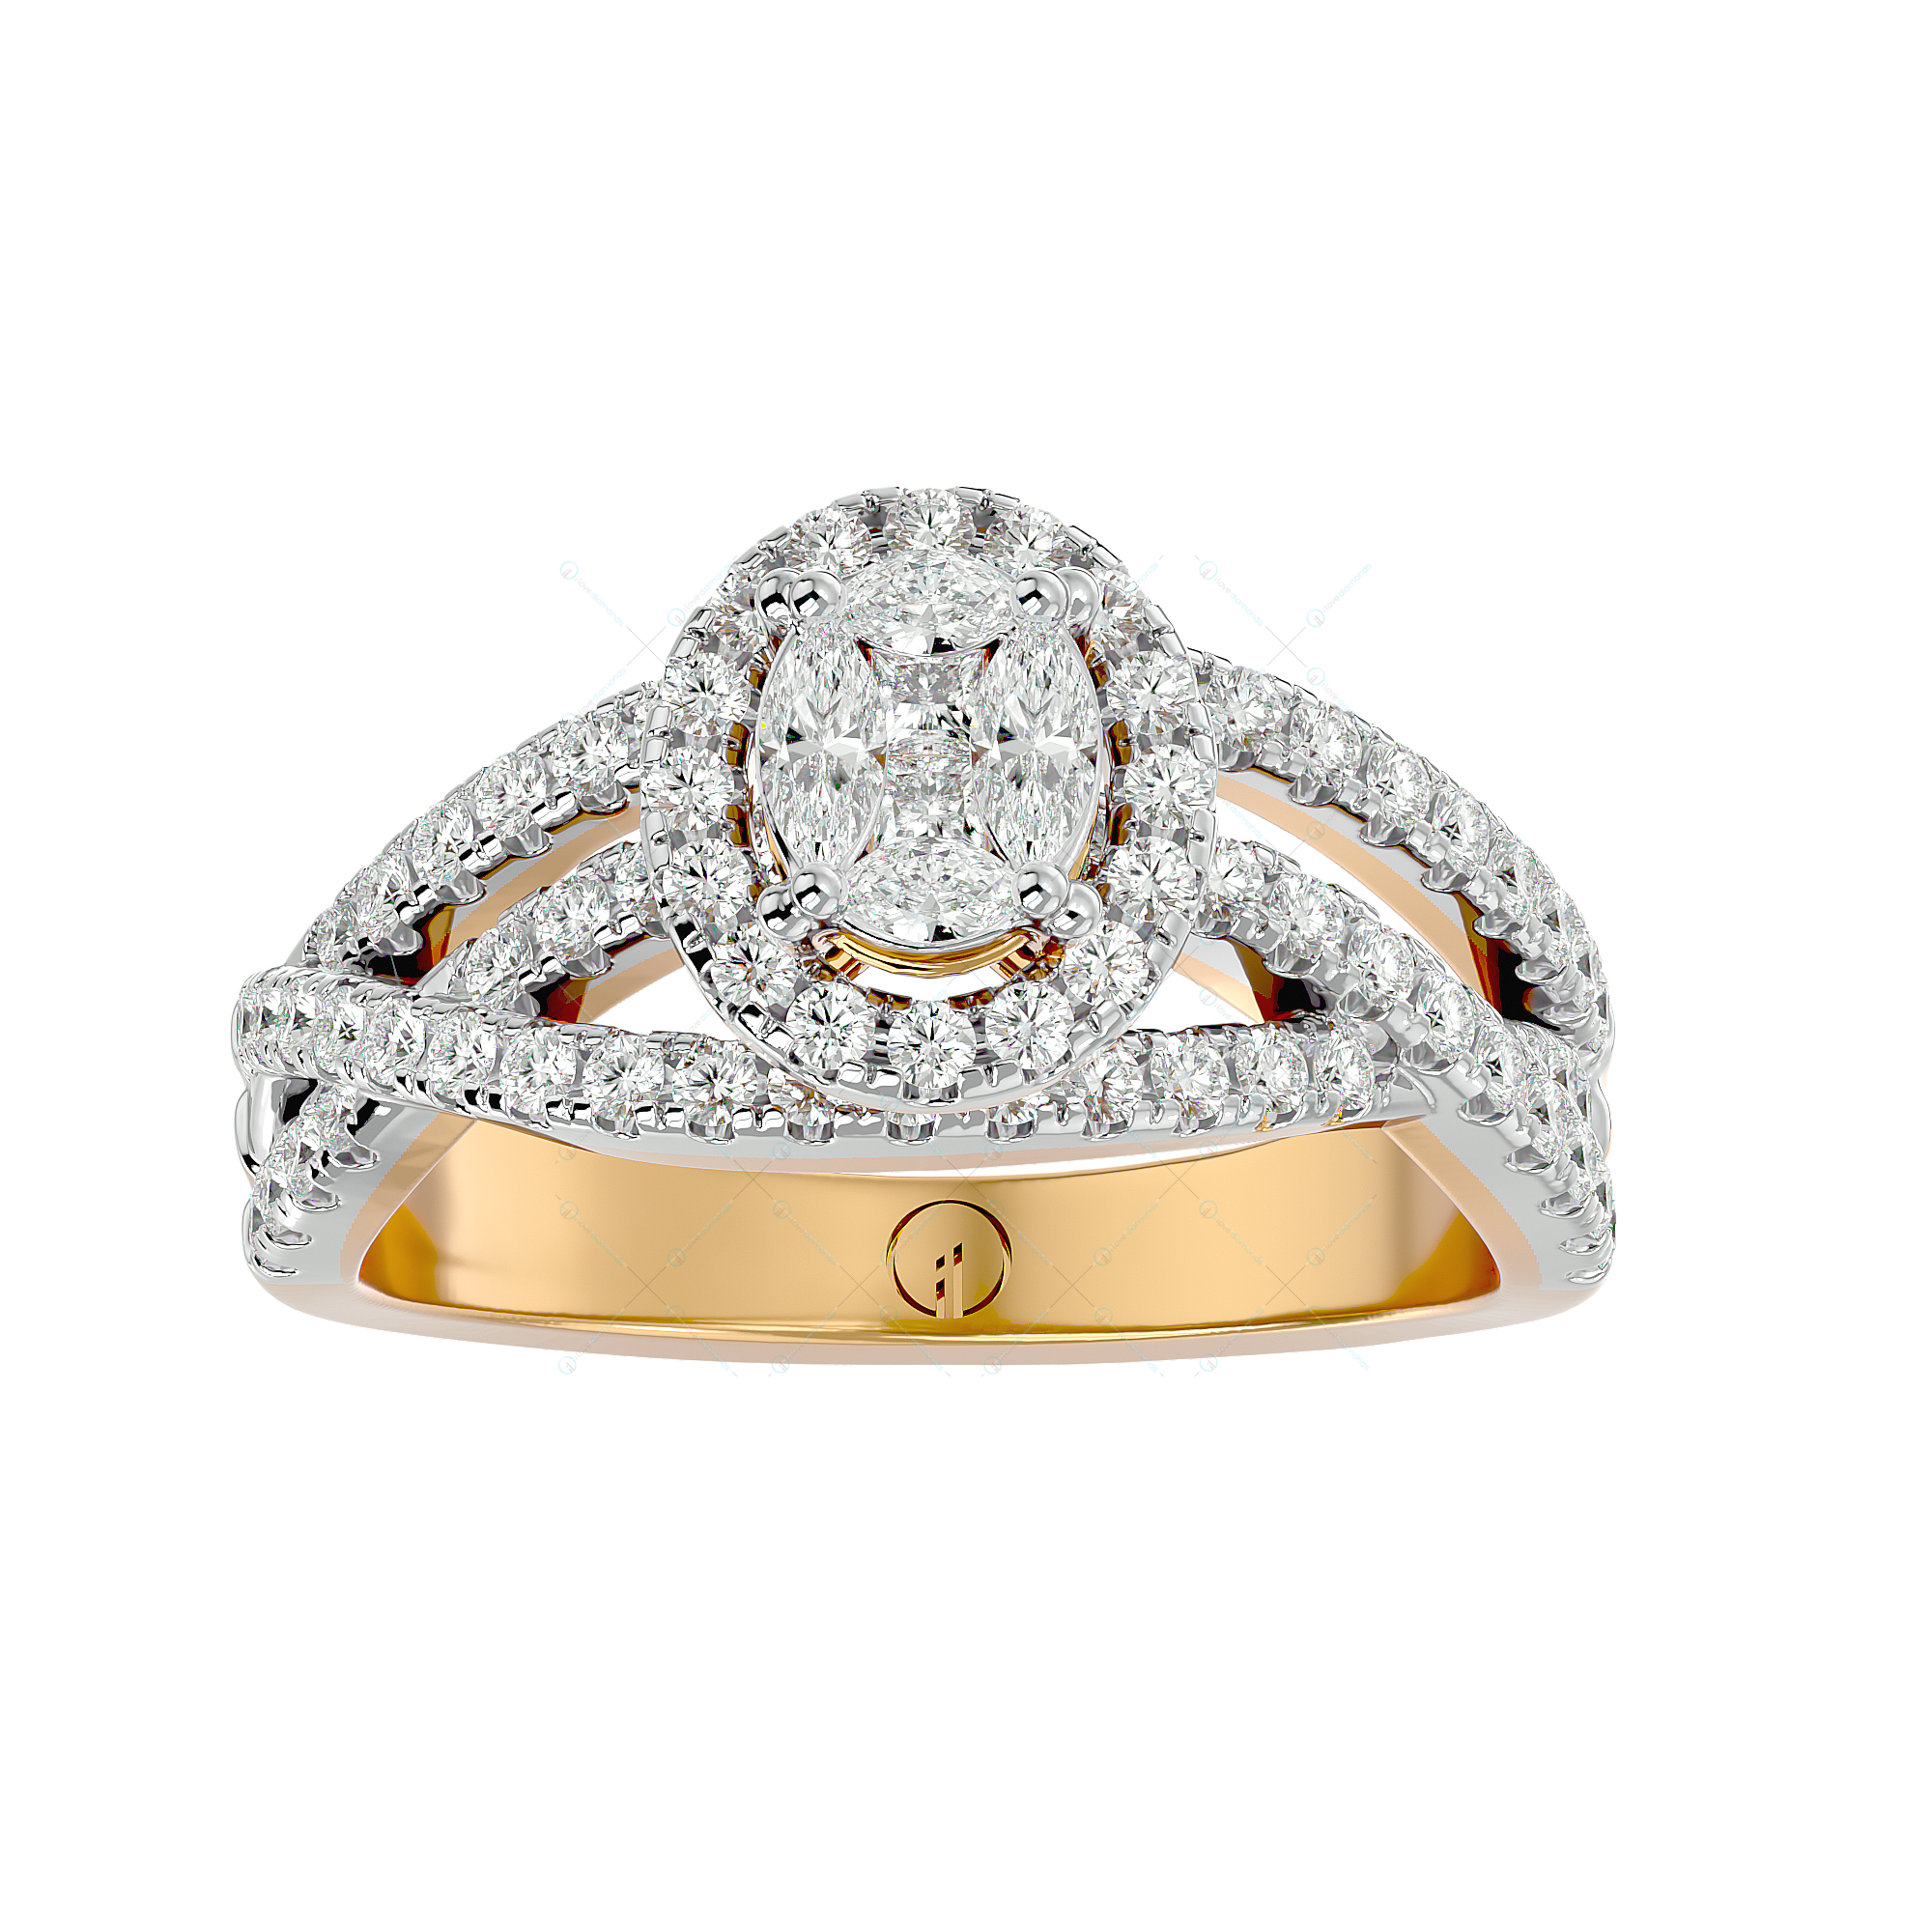 Ornate Oval Solitaire Illusion Diamond Ring in Yellow Gold for Women v2